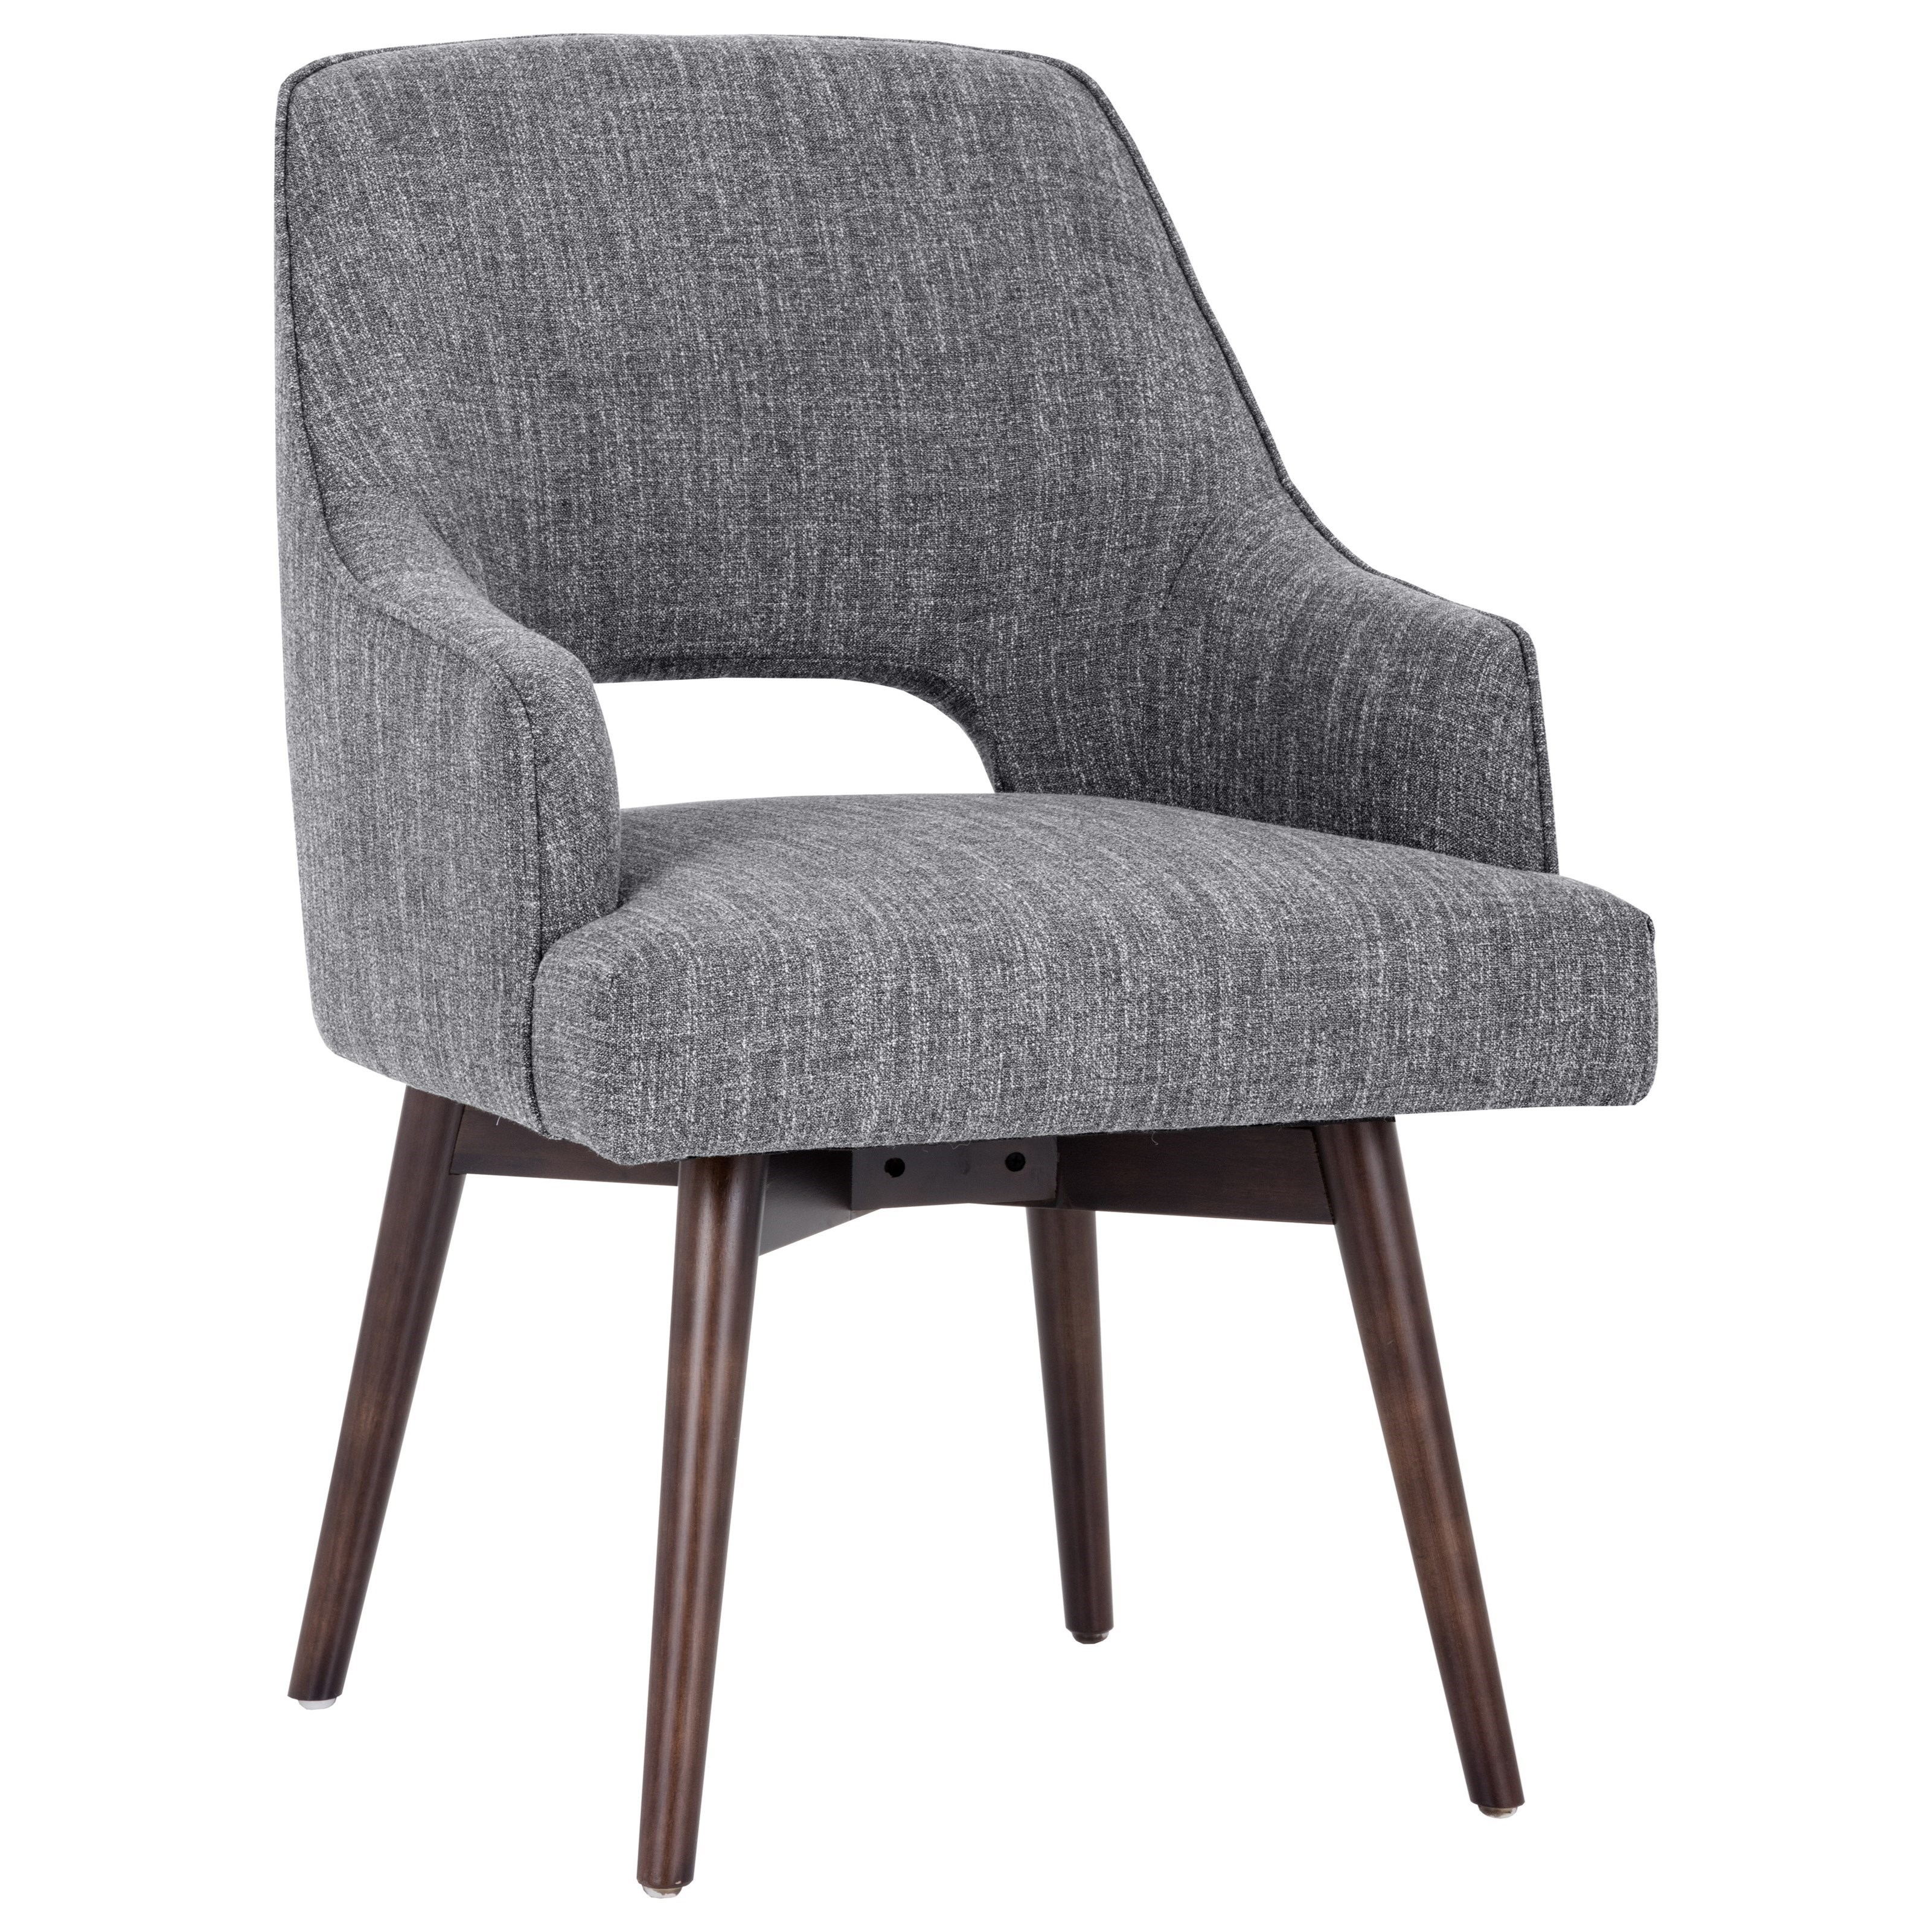 Sunpan Imports 5West Newton Swivel Armchair - Item Number: 101959